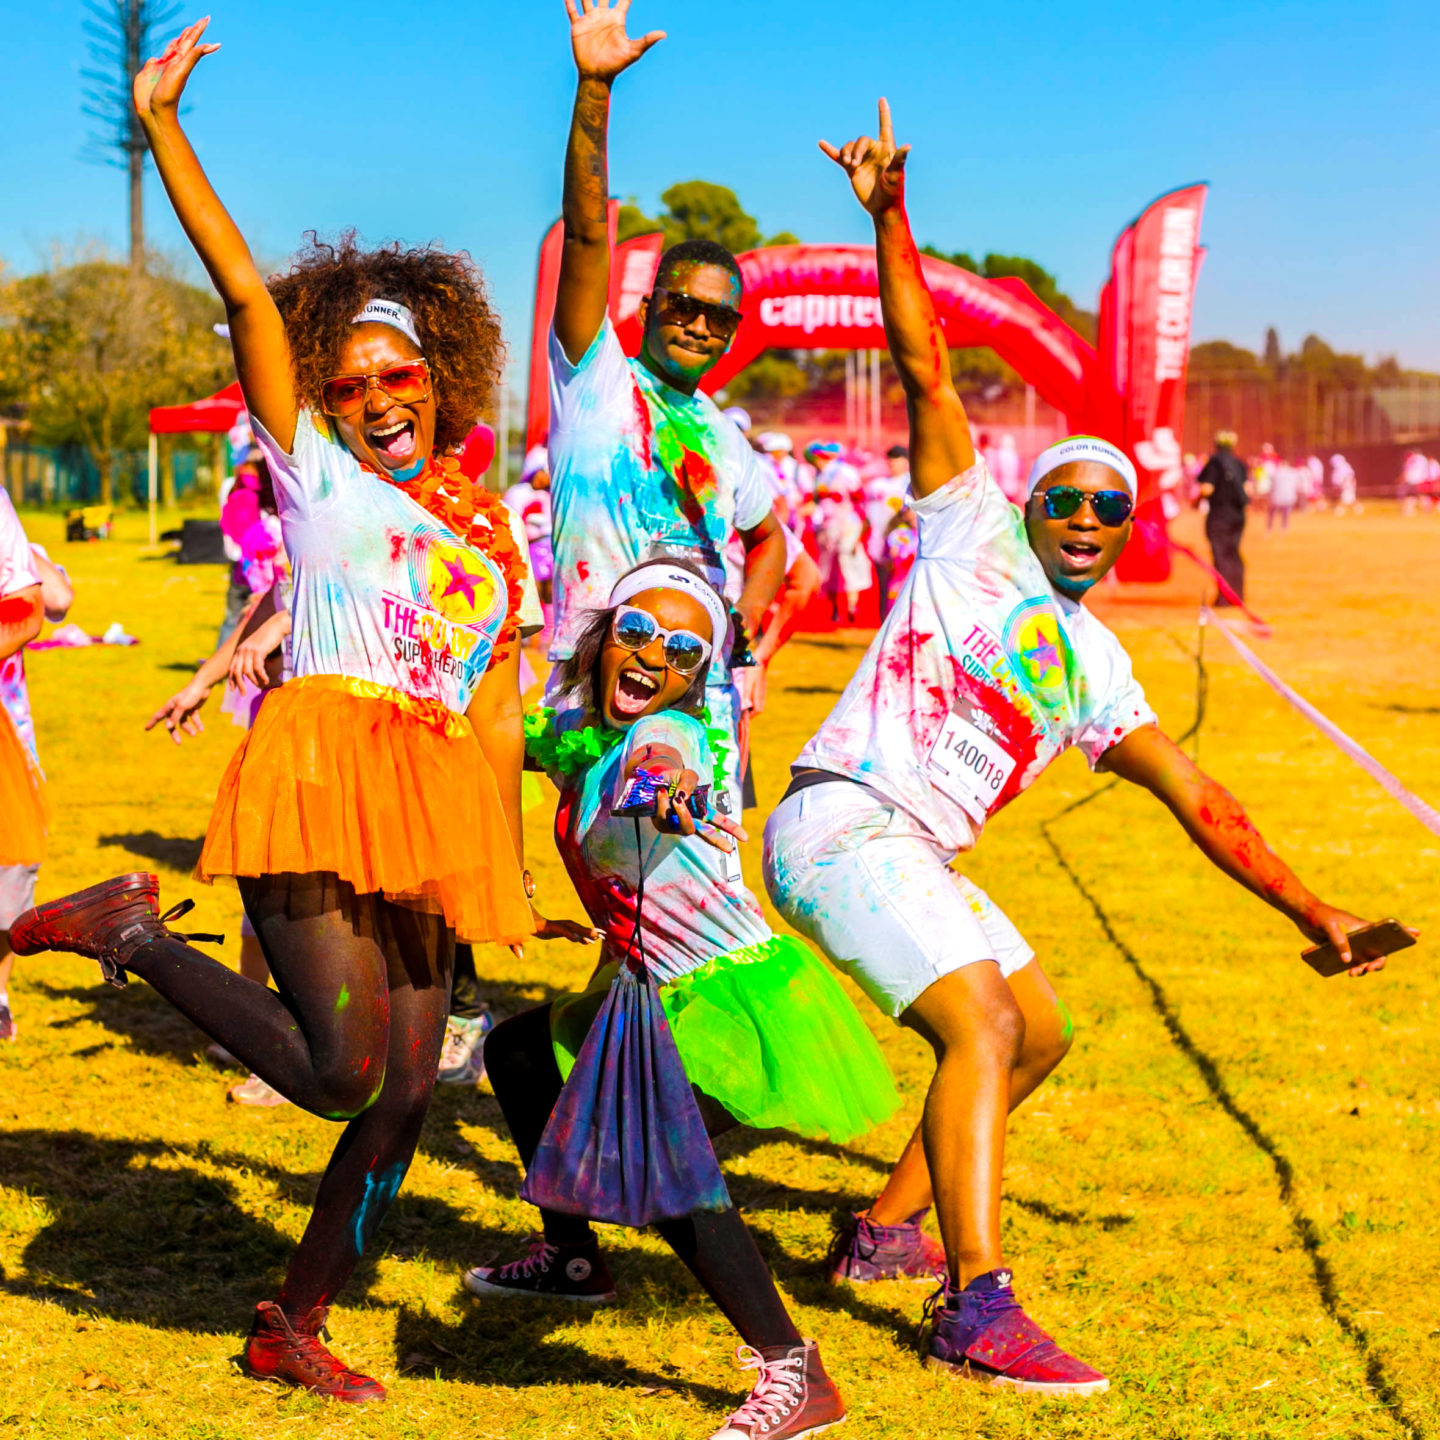 Win ColorRun tickets for your family and friends- Enter NOW